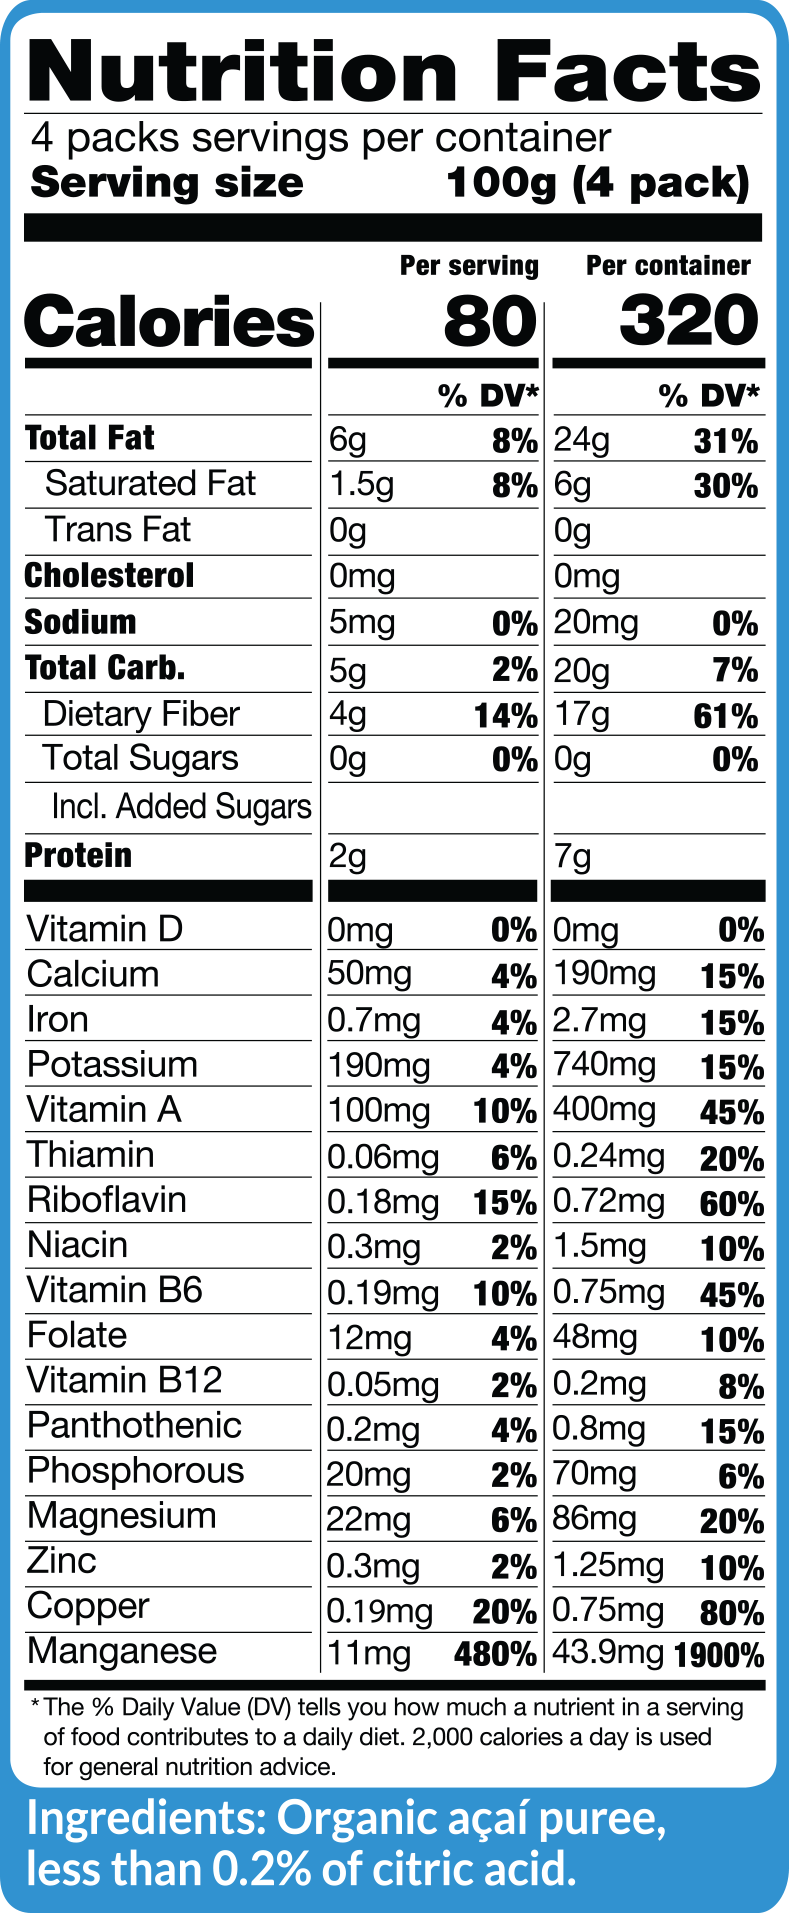 Acai Pure and Unsweetened Fruit Packs Nutritional Facts